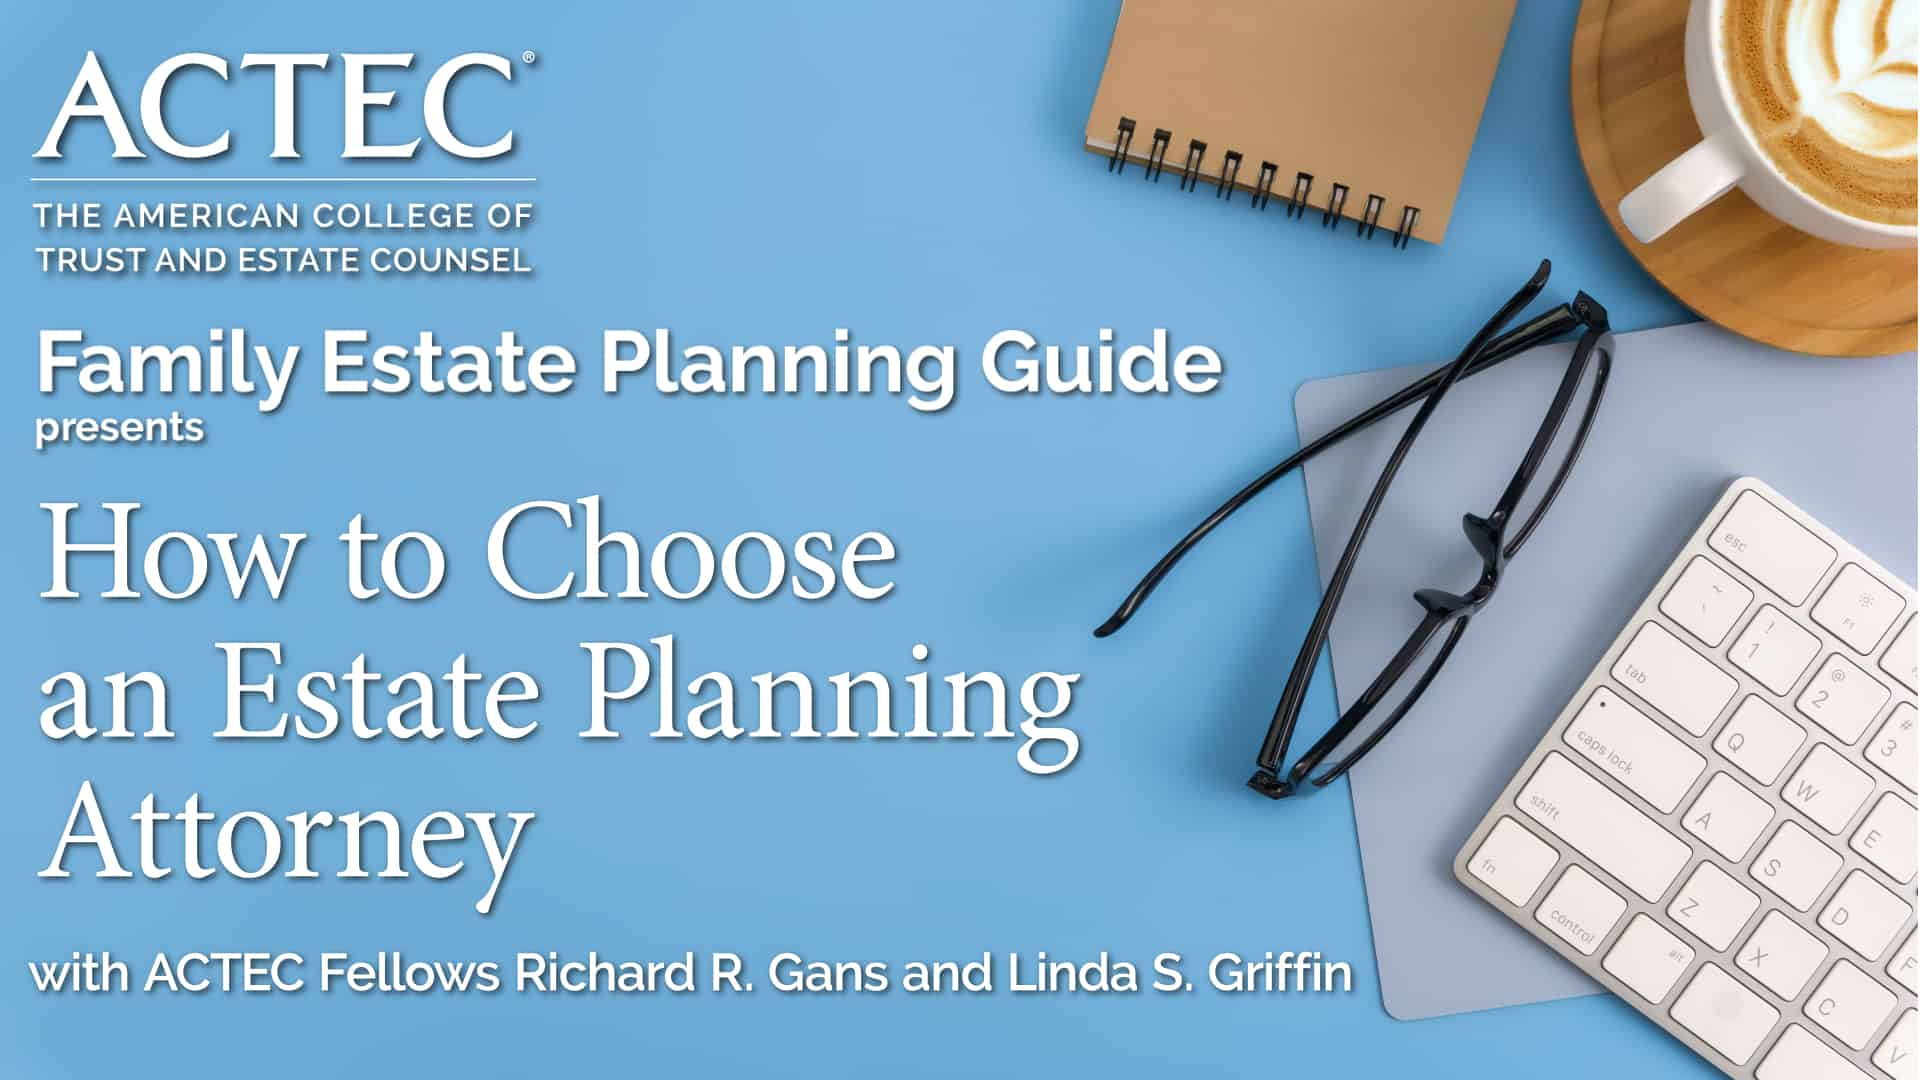 How to Choose an Estate Planning Attorney